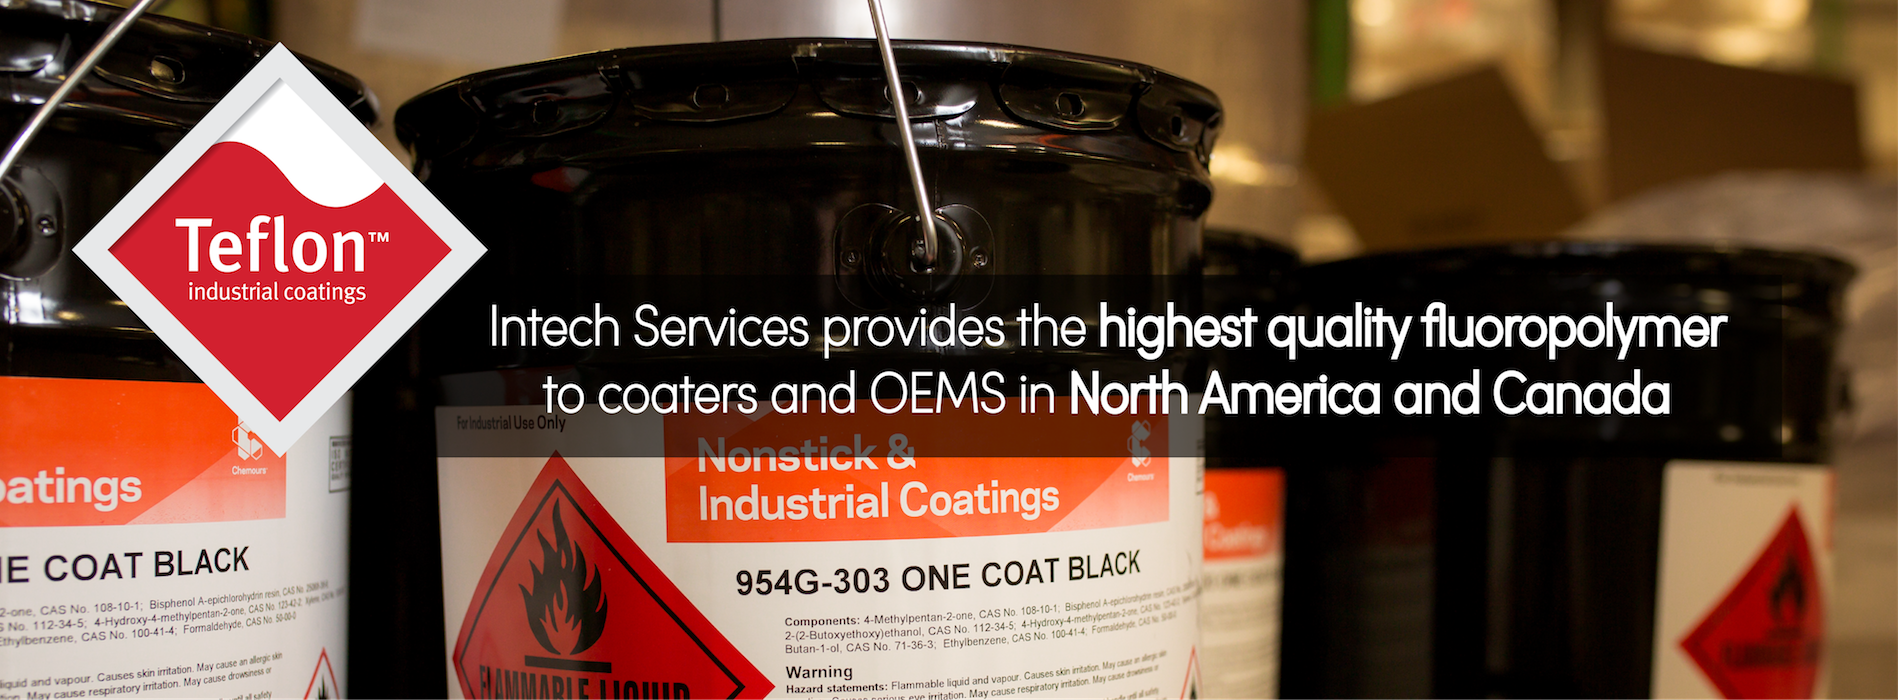 Intech Services, Inc  | Sole Distributor of Teflon™ Coatings